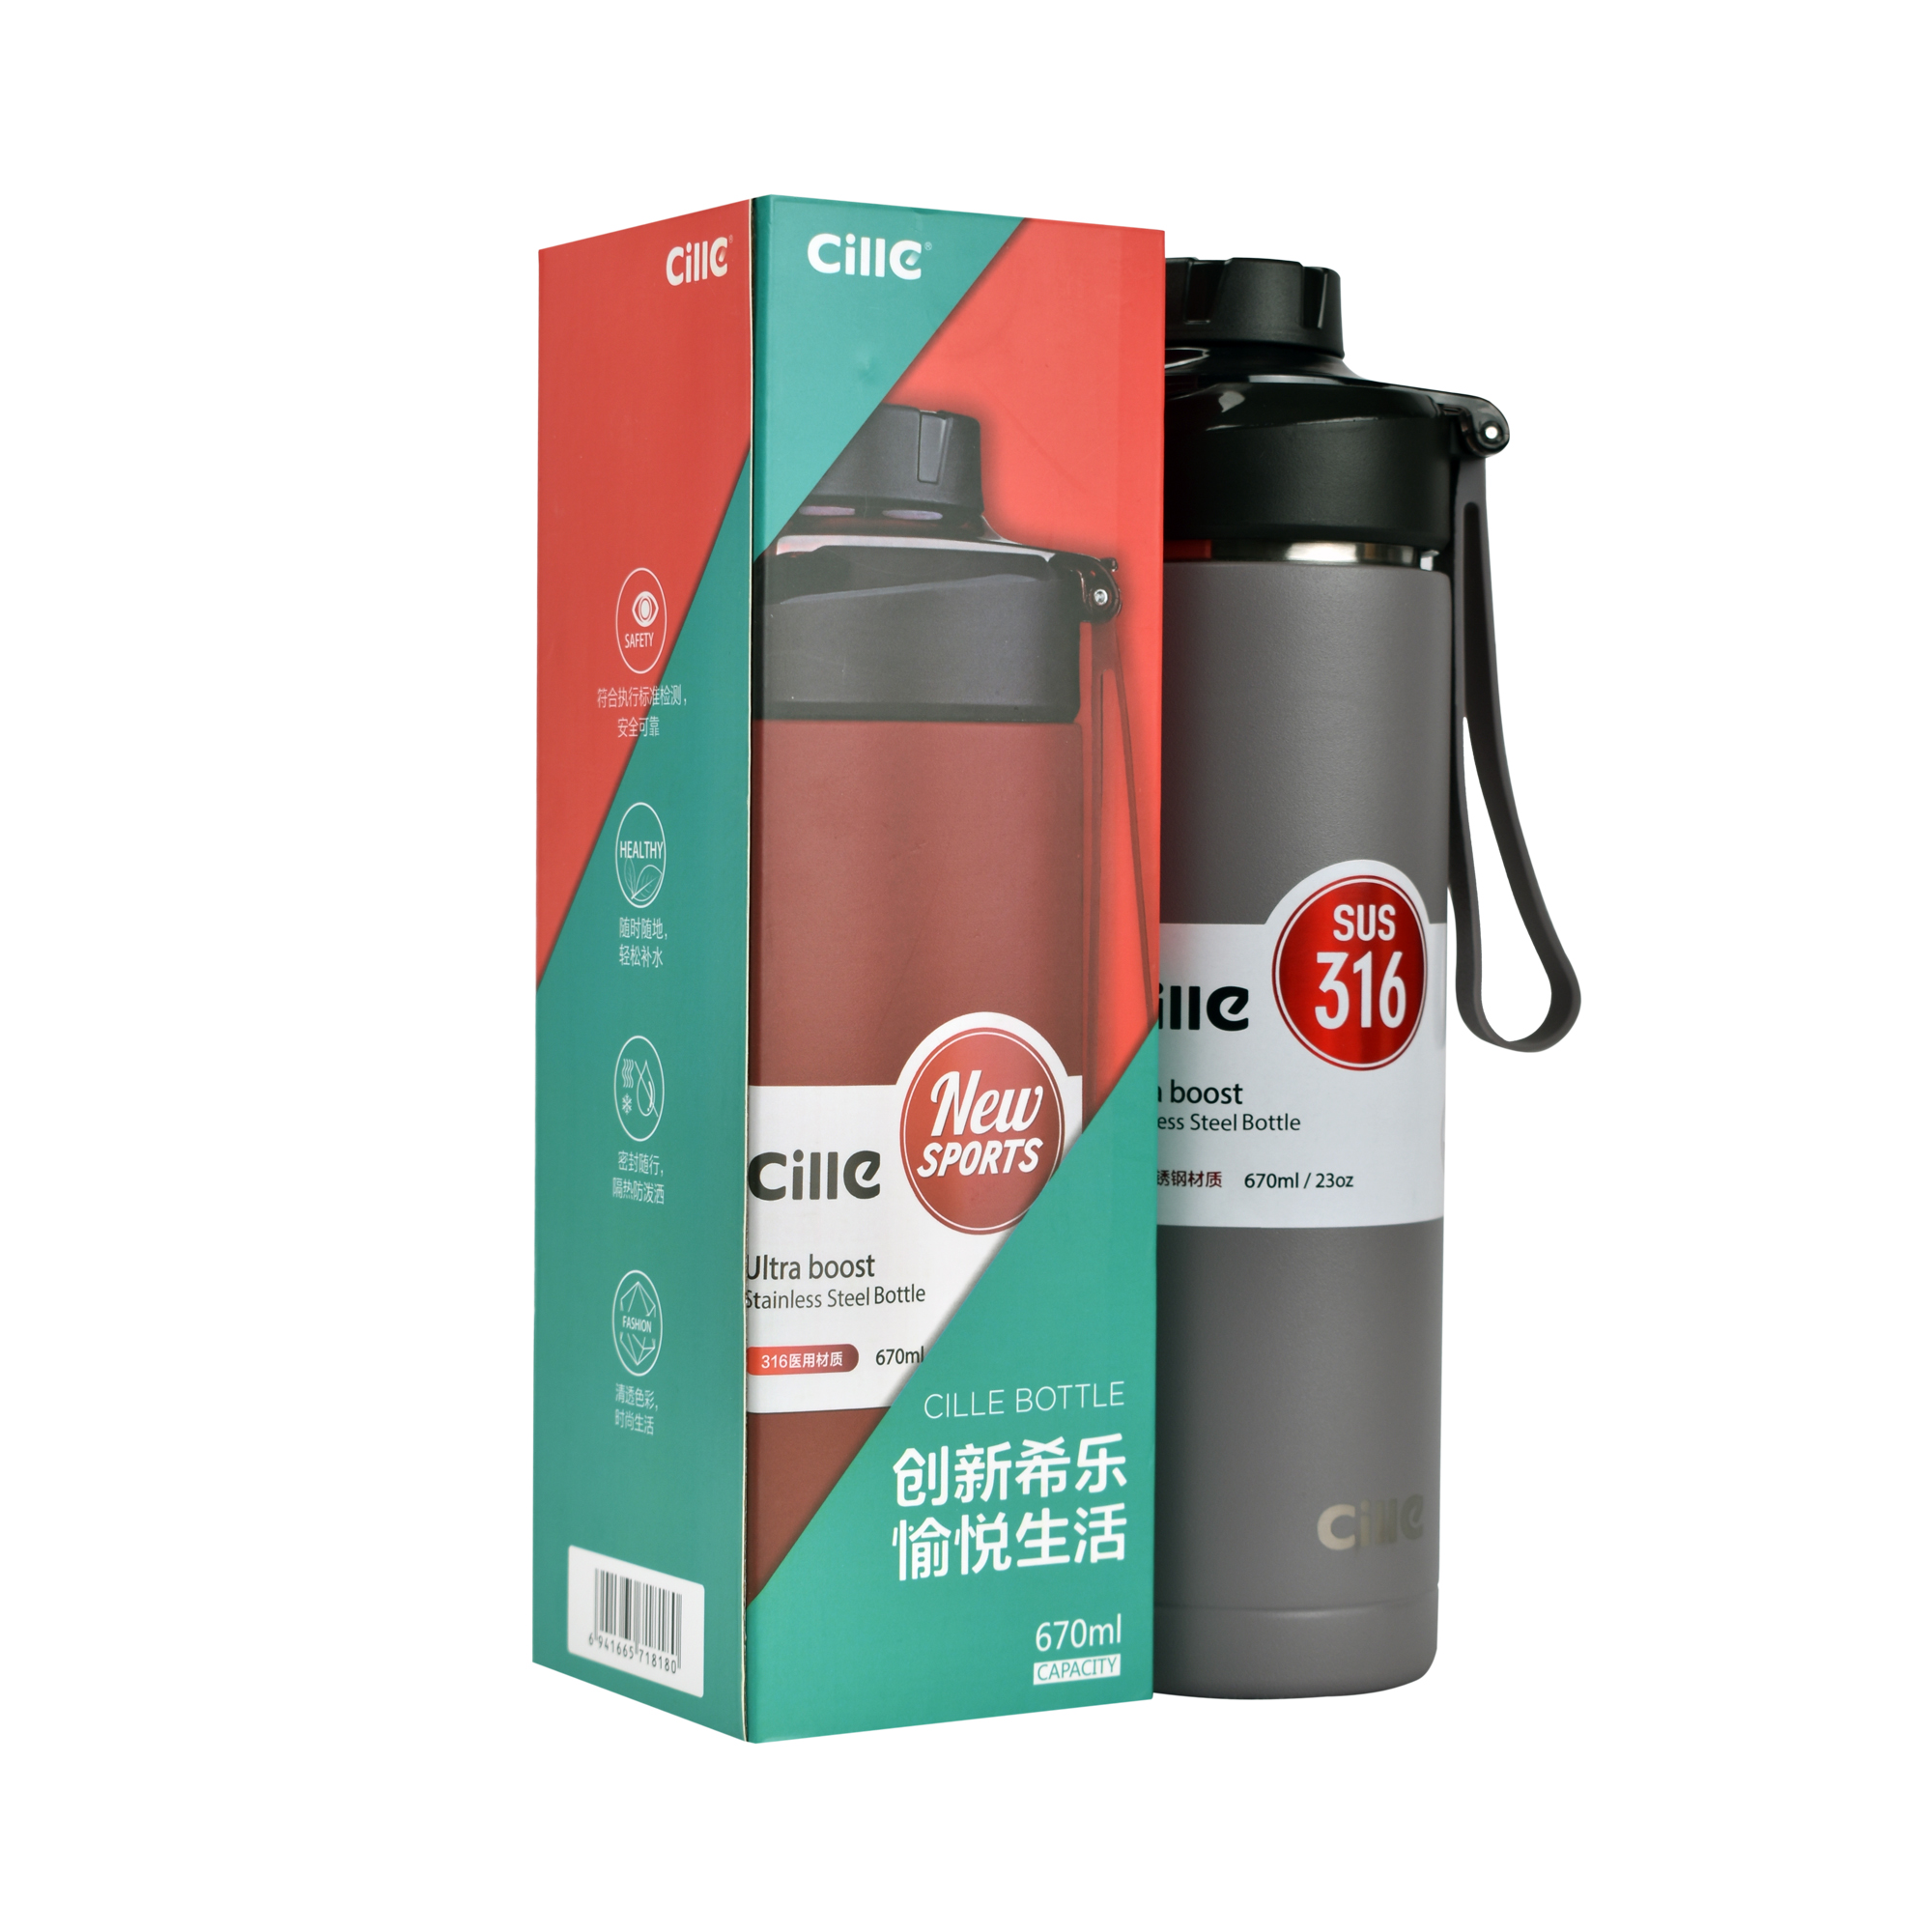 CILLE XB-19125 STEEL BOTTLE HOT&COLD THERMOS VACUUM FLASK BOTTLE 670ML